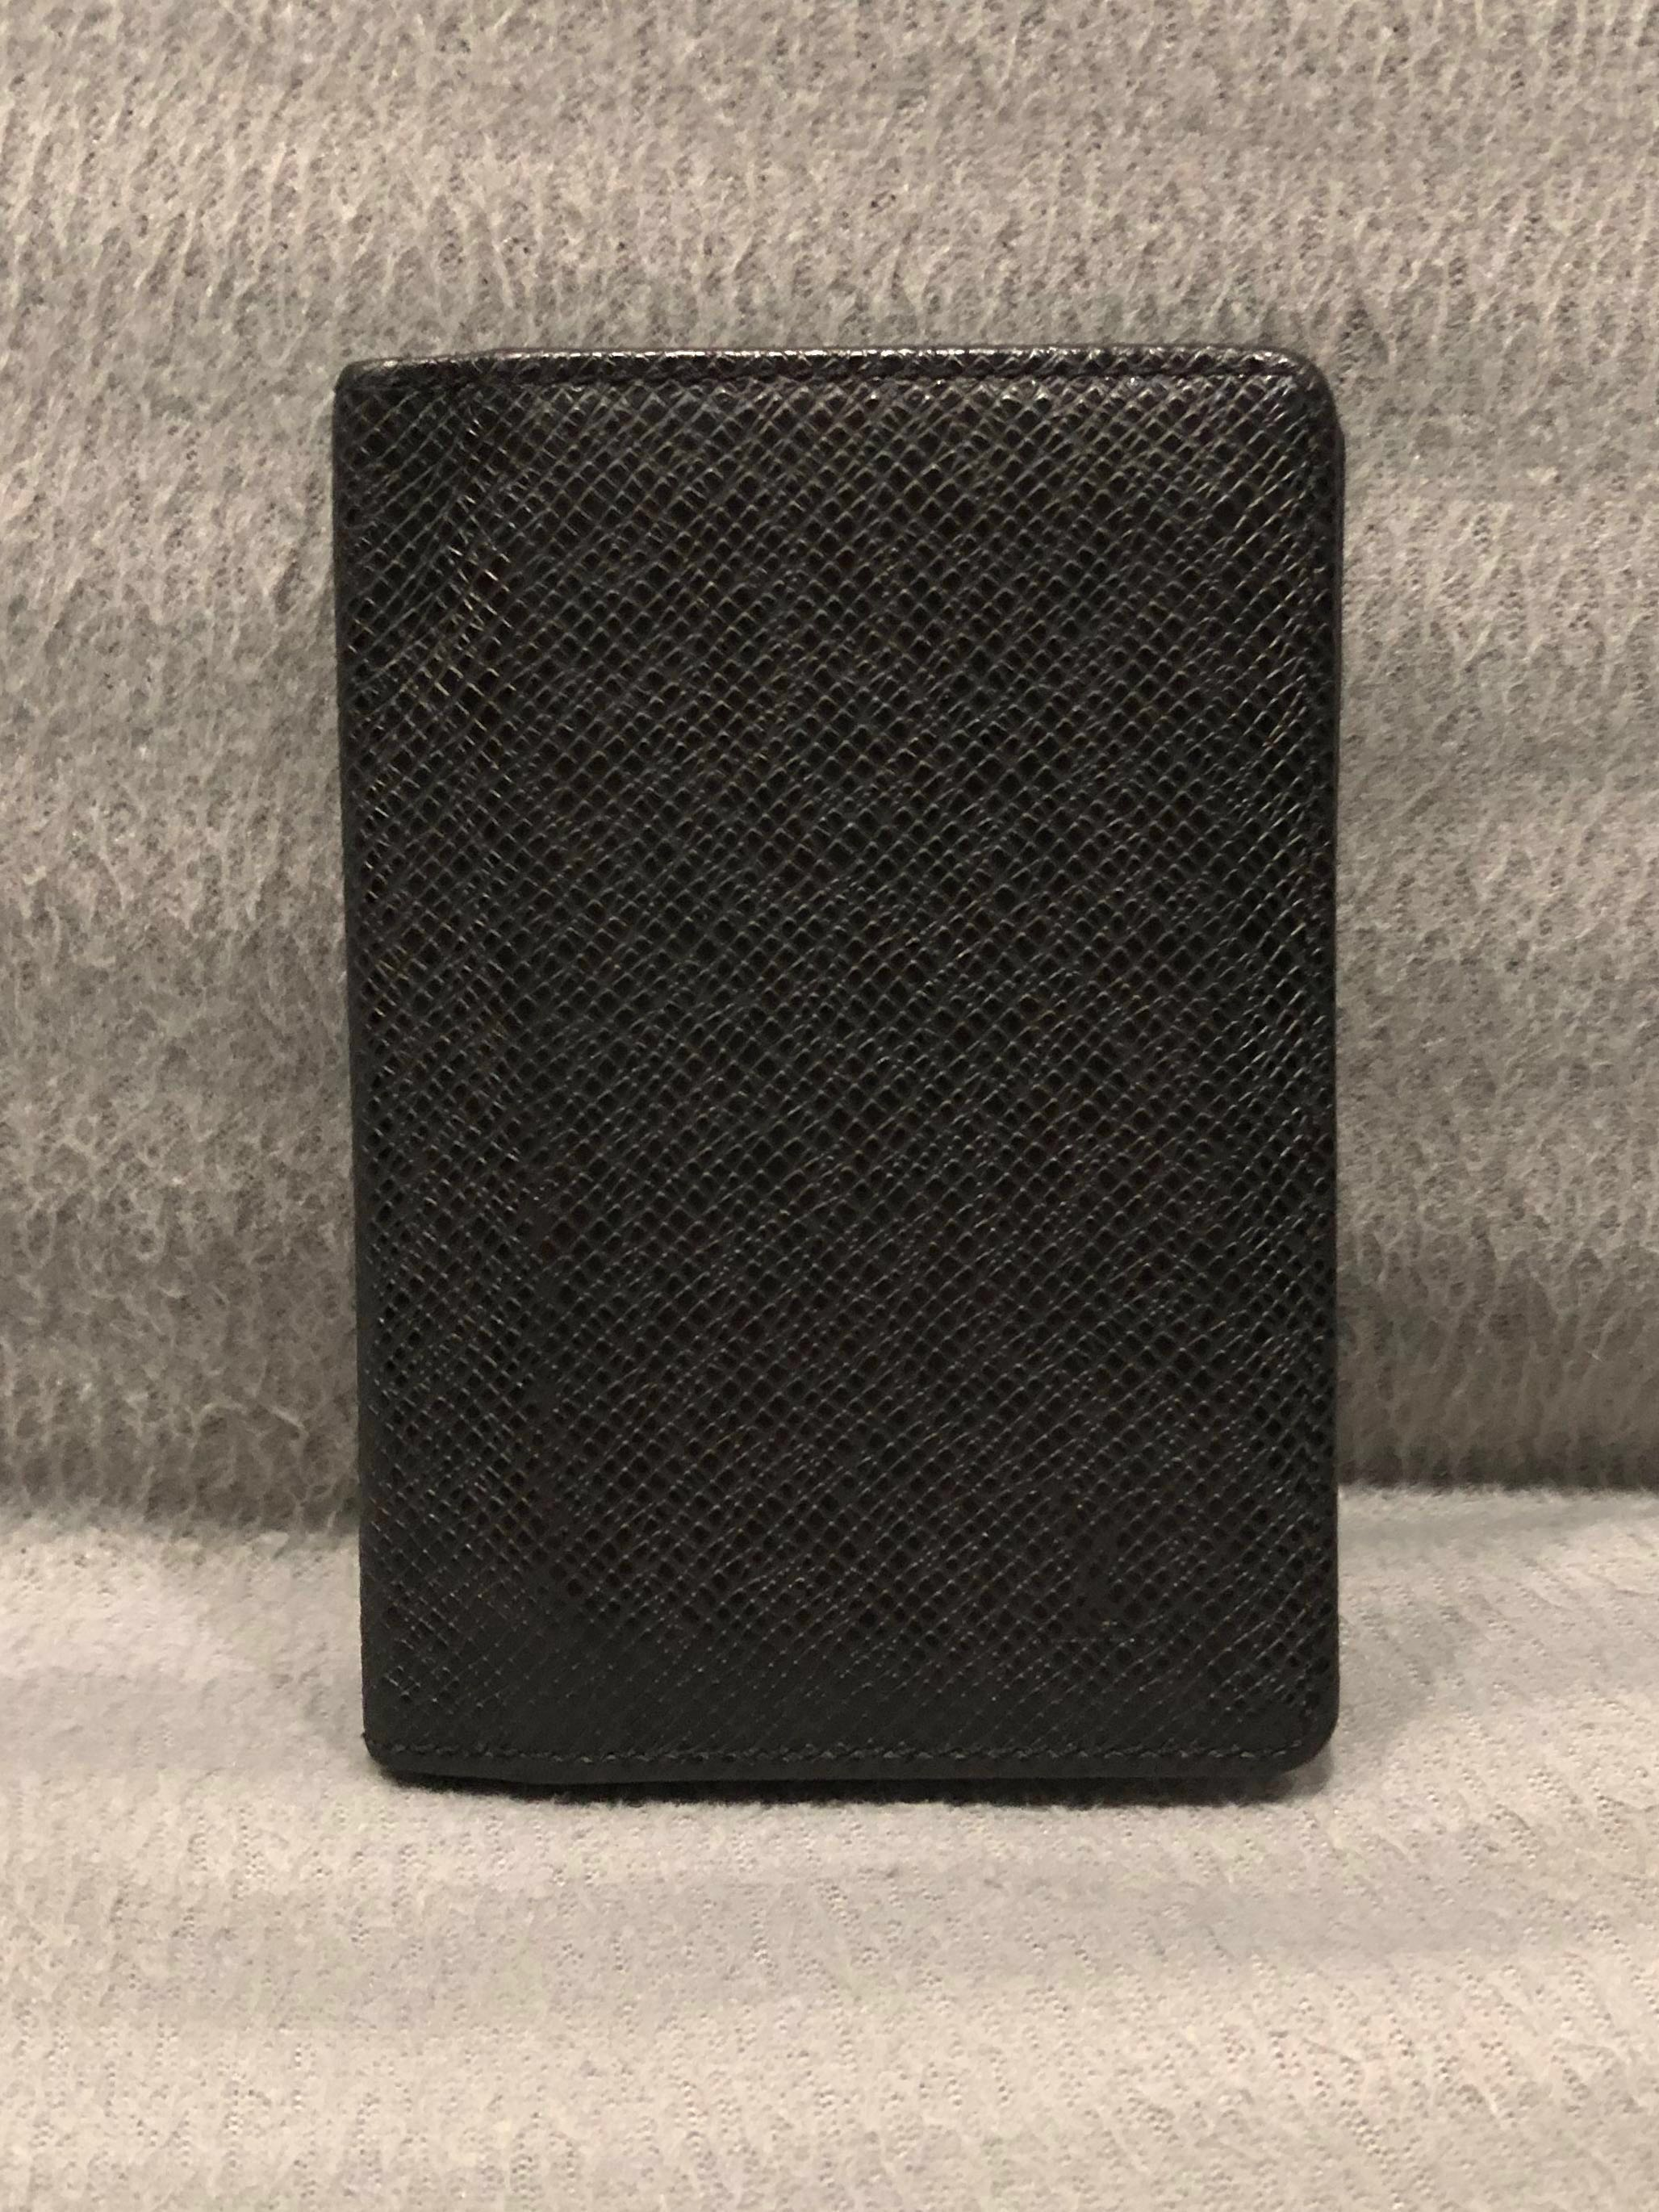 the best attitude 850d7 b436a Authentic Louis Vuitton Men's Card Holder (Fast Deal @ $250)